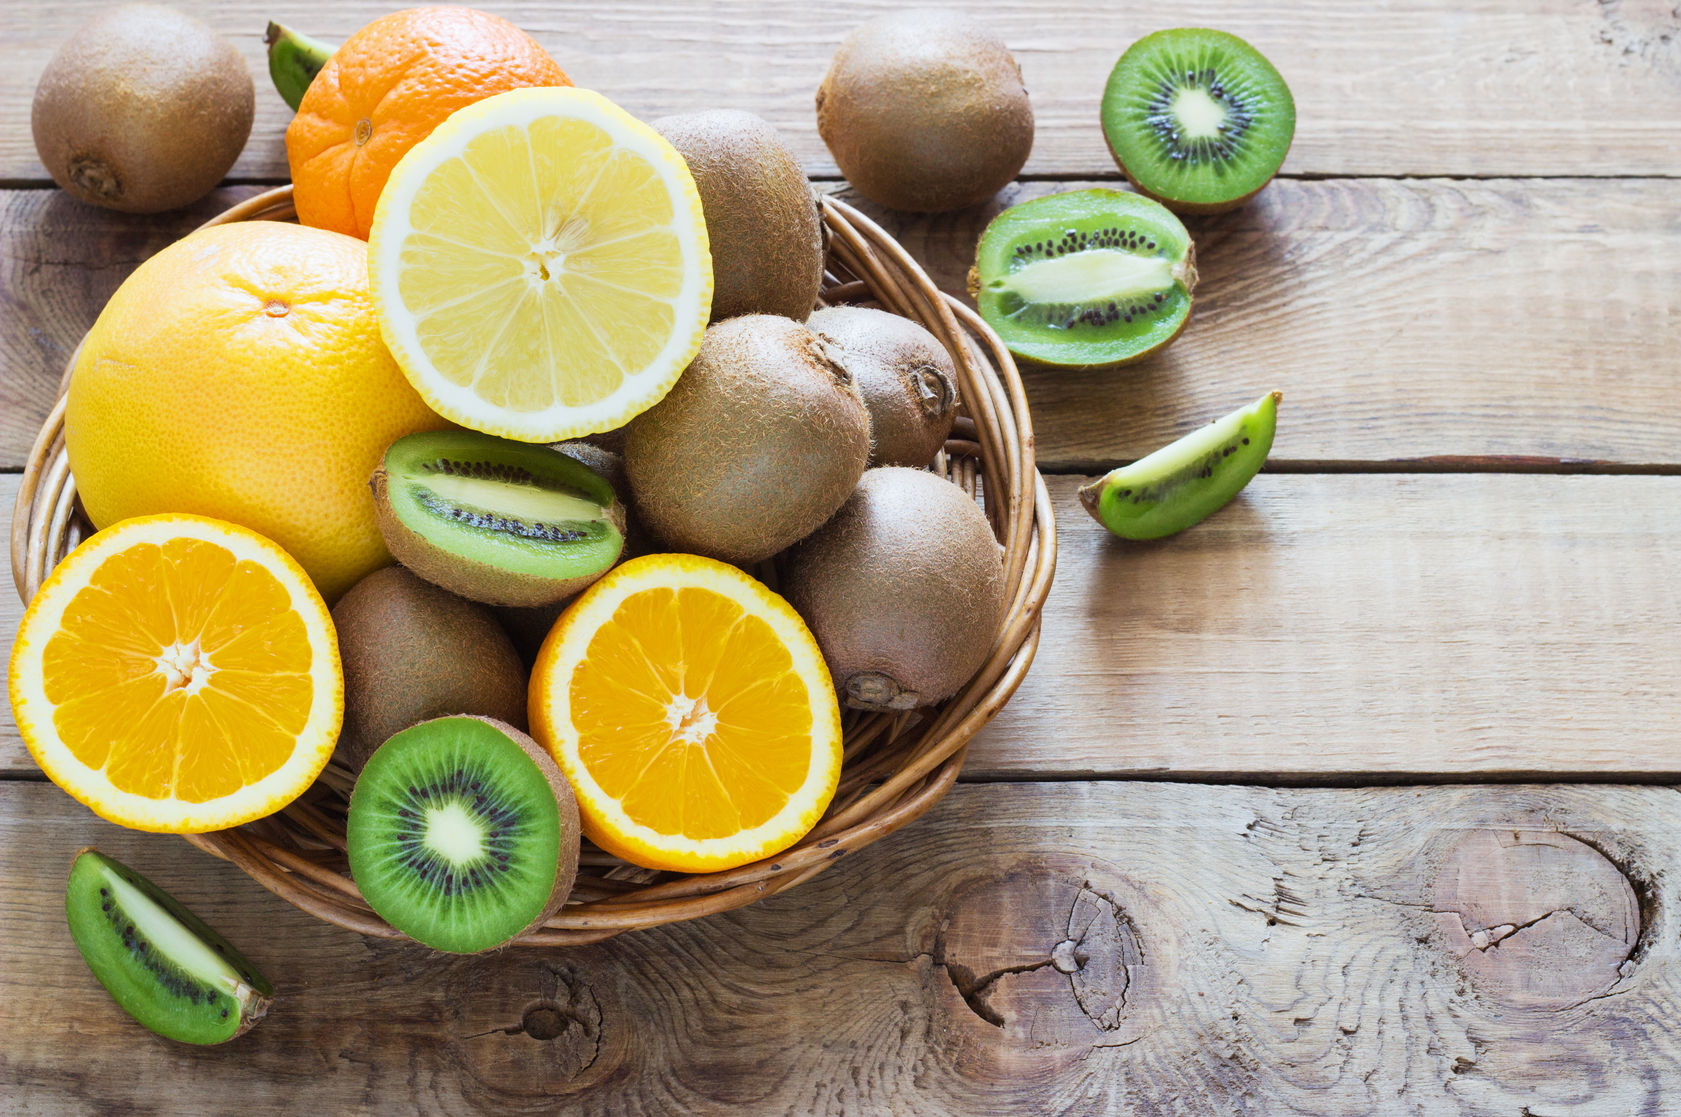 55698244 - fresh juicy citrus fruits in a basket on a wooden background kiwi, orange, lemon, grapefruit